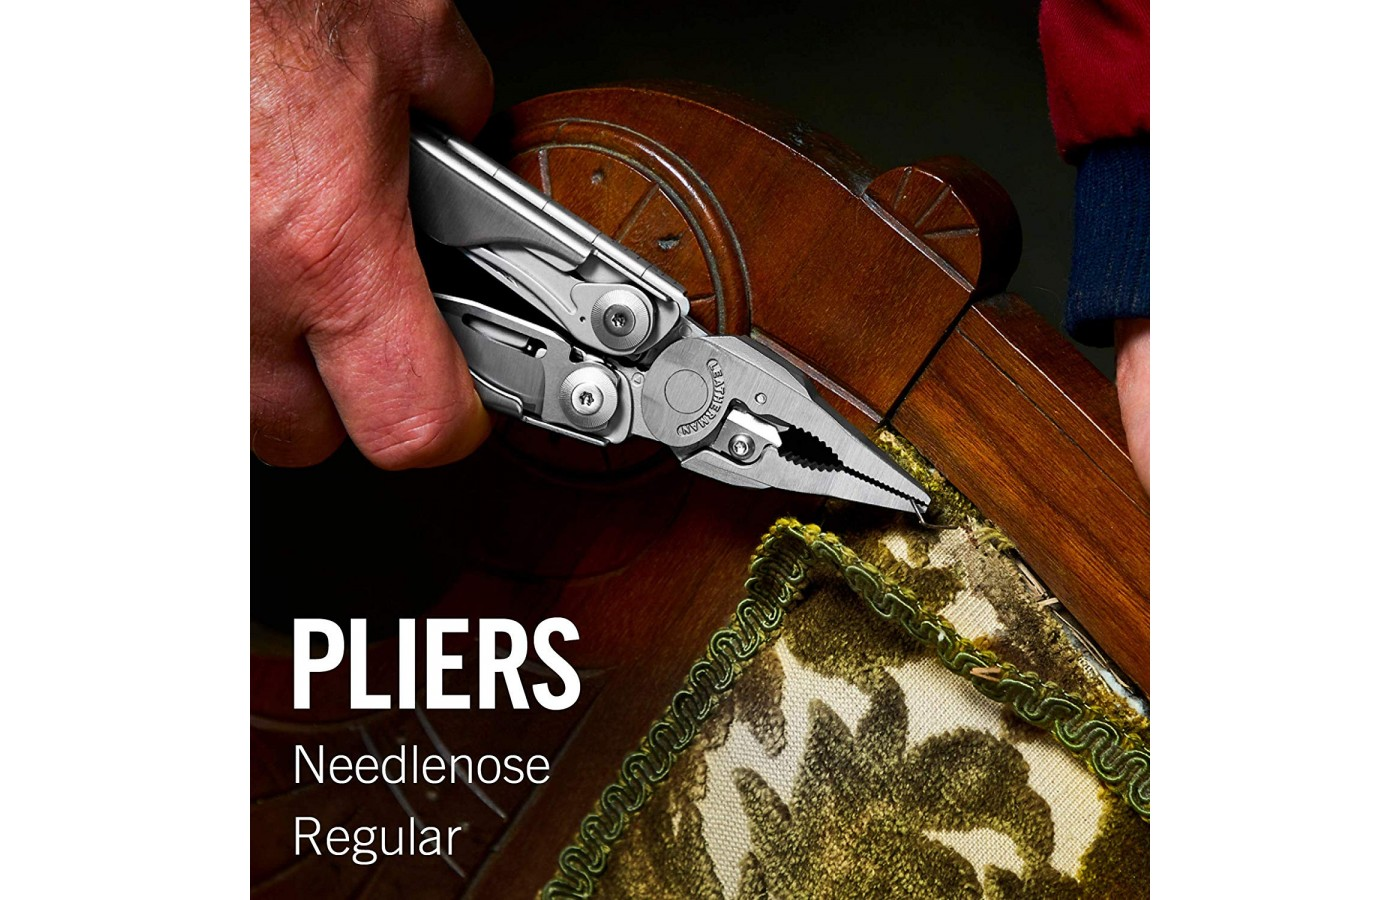 The Leatherman Surge has full size pliers to tackle your projects.